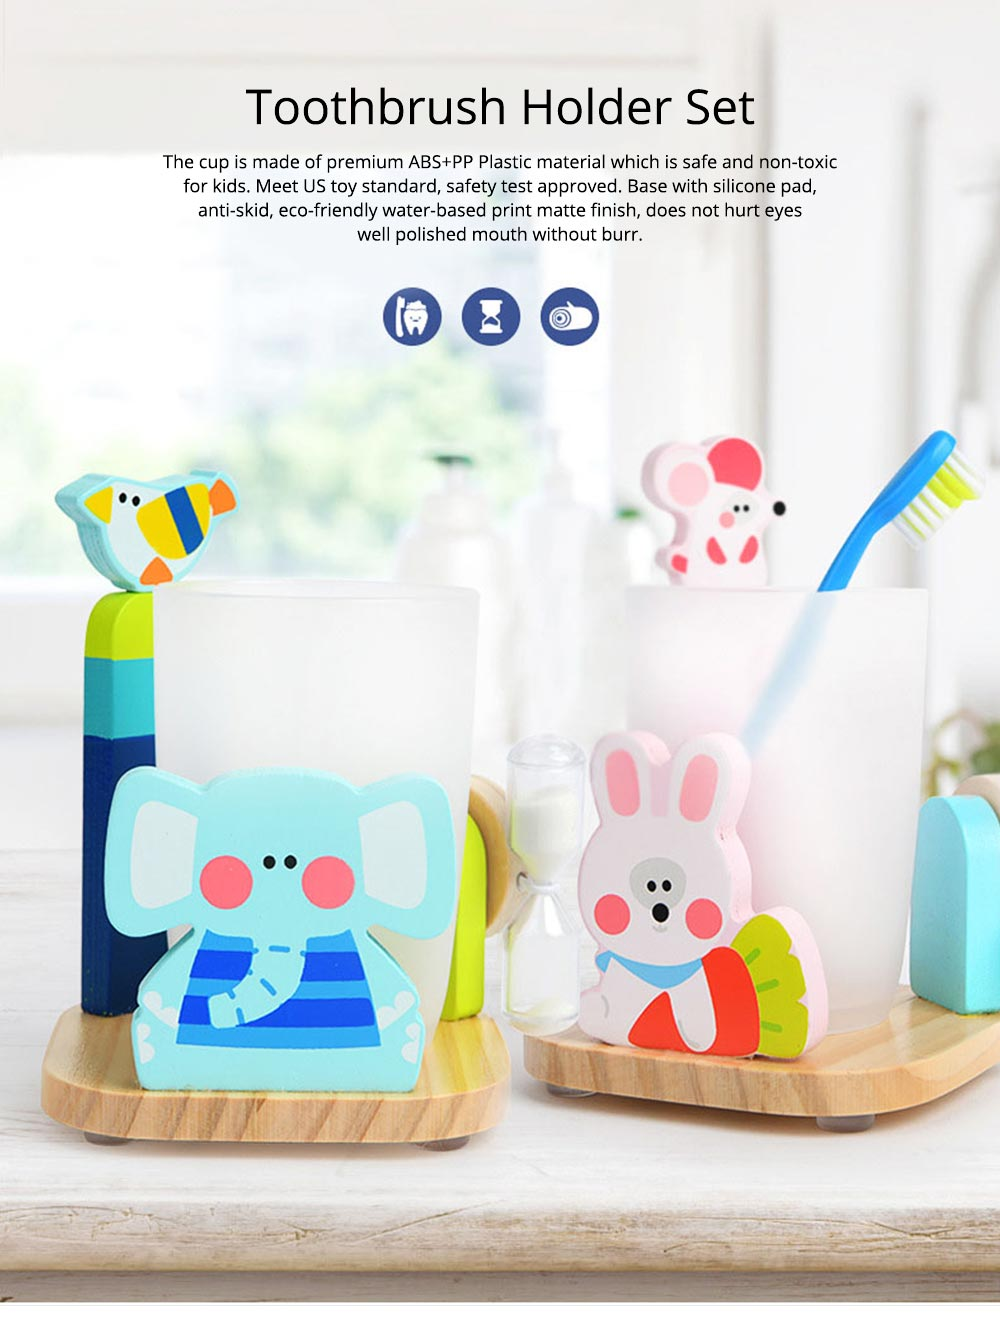 Cartoon Toothbrush Holder Set, Kids Toothbrush Cup Glass with 3 Minutes Sandglass, Timer, Best Gifts for Kids 0